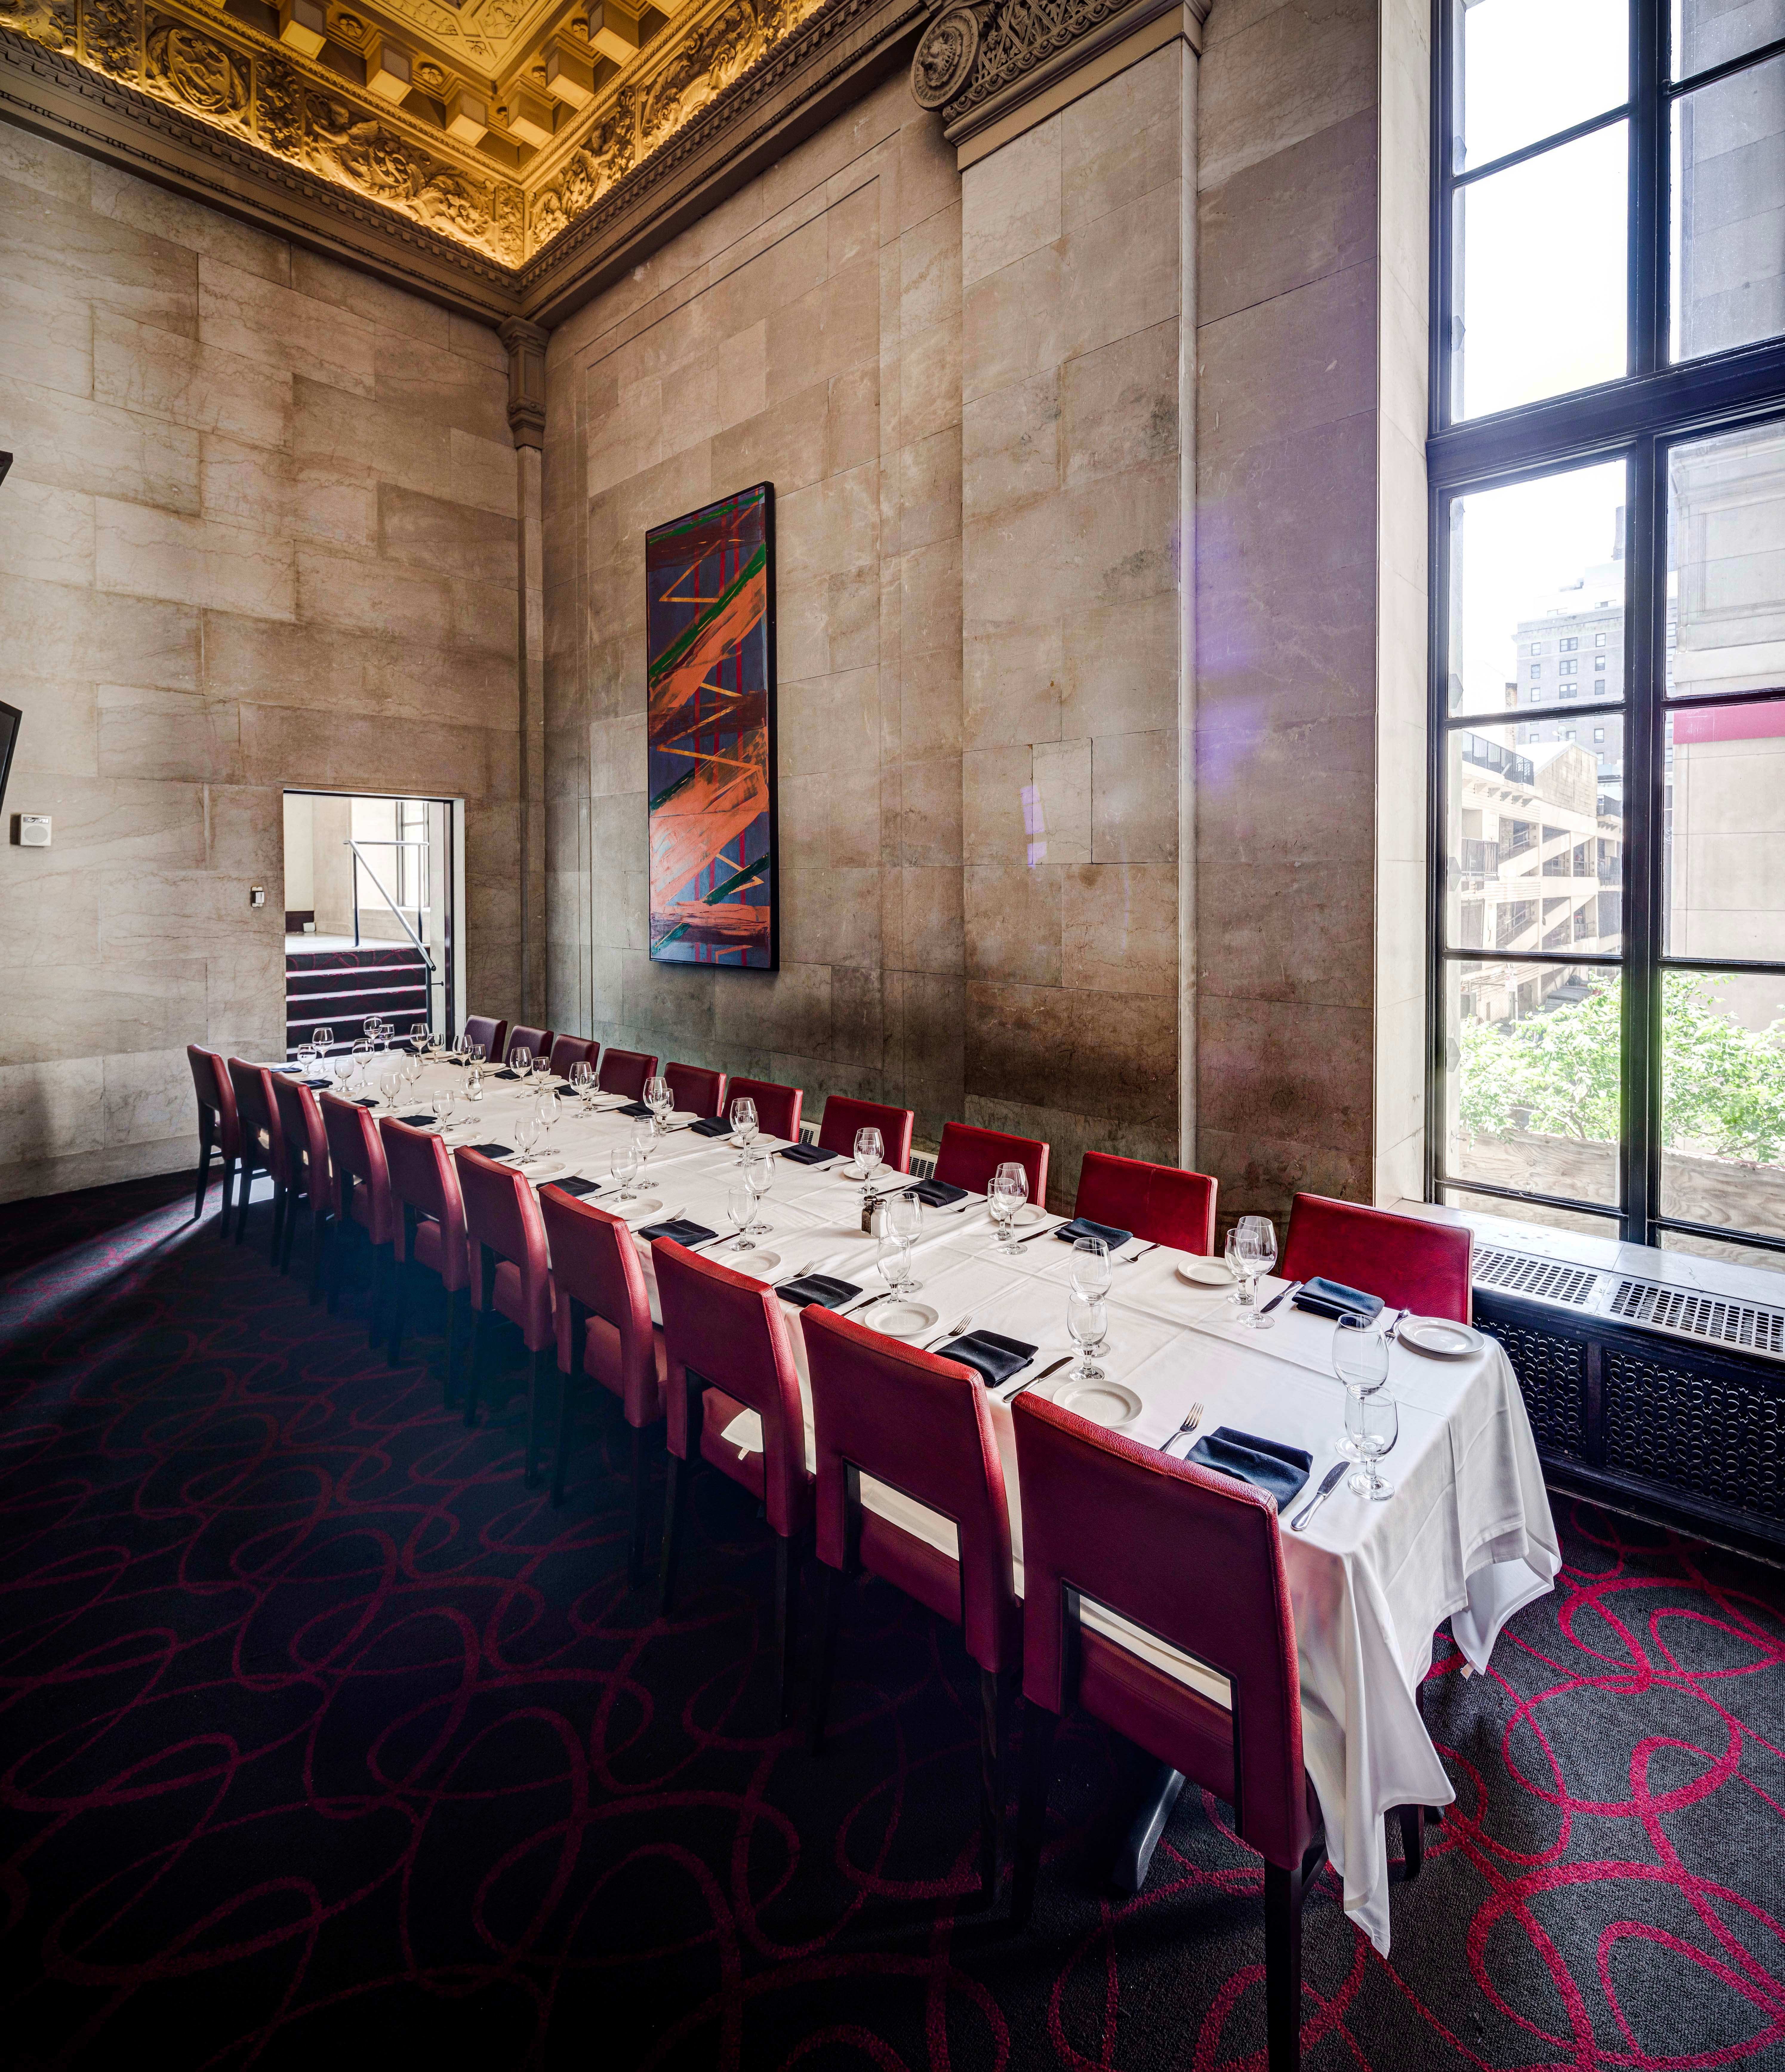 Del Frisco's Double Eagle Steakhouse Philadelphia Grotto private dining room